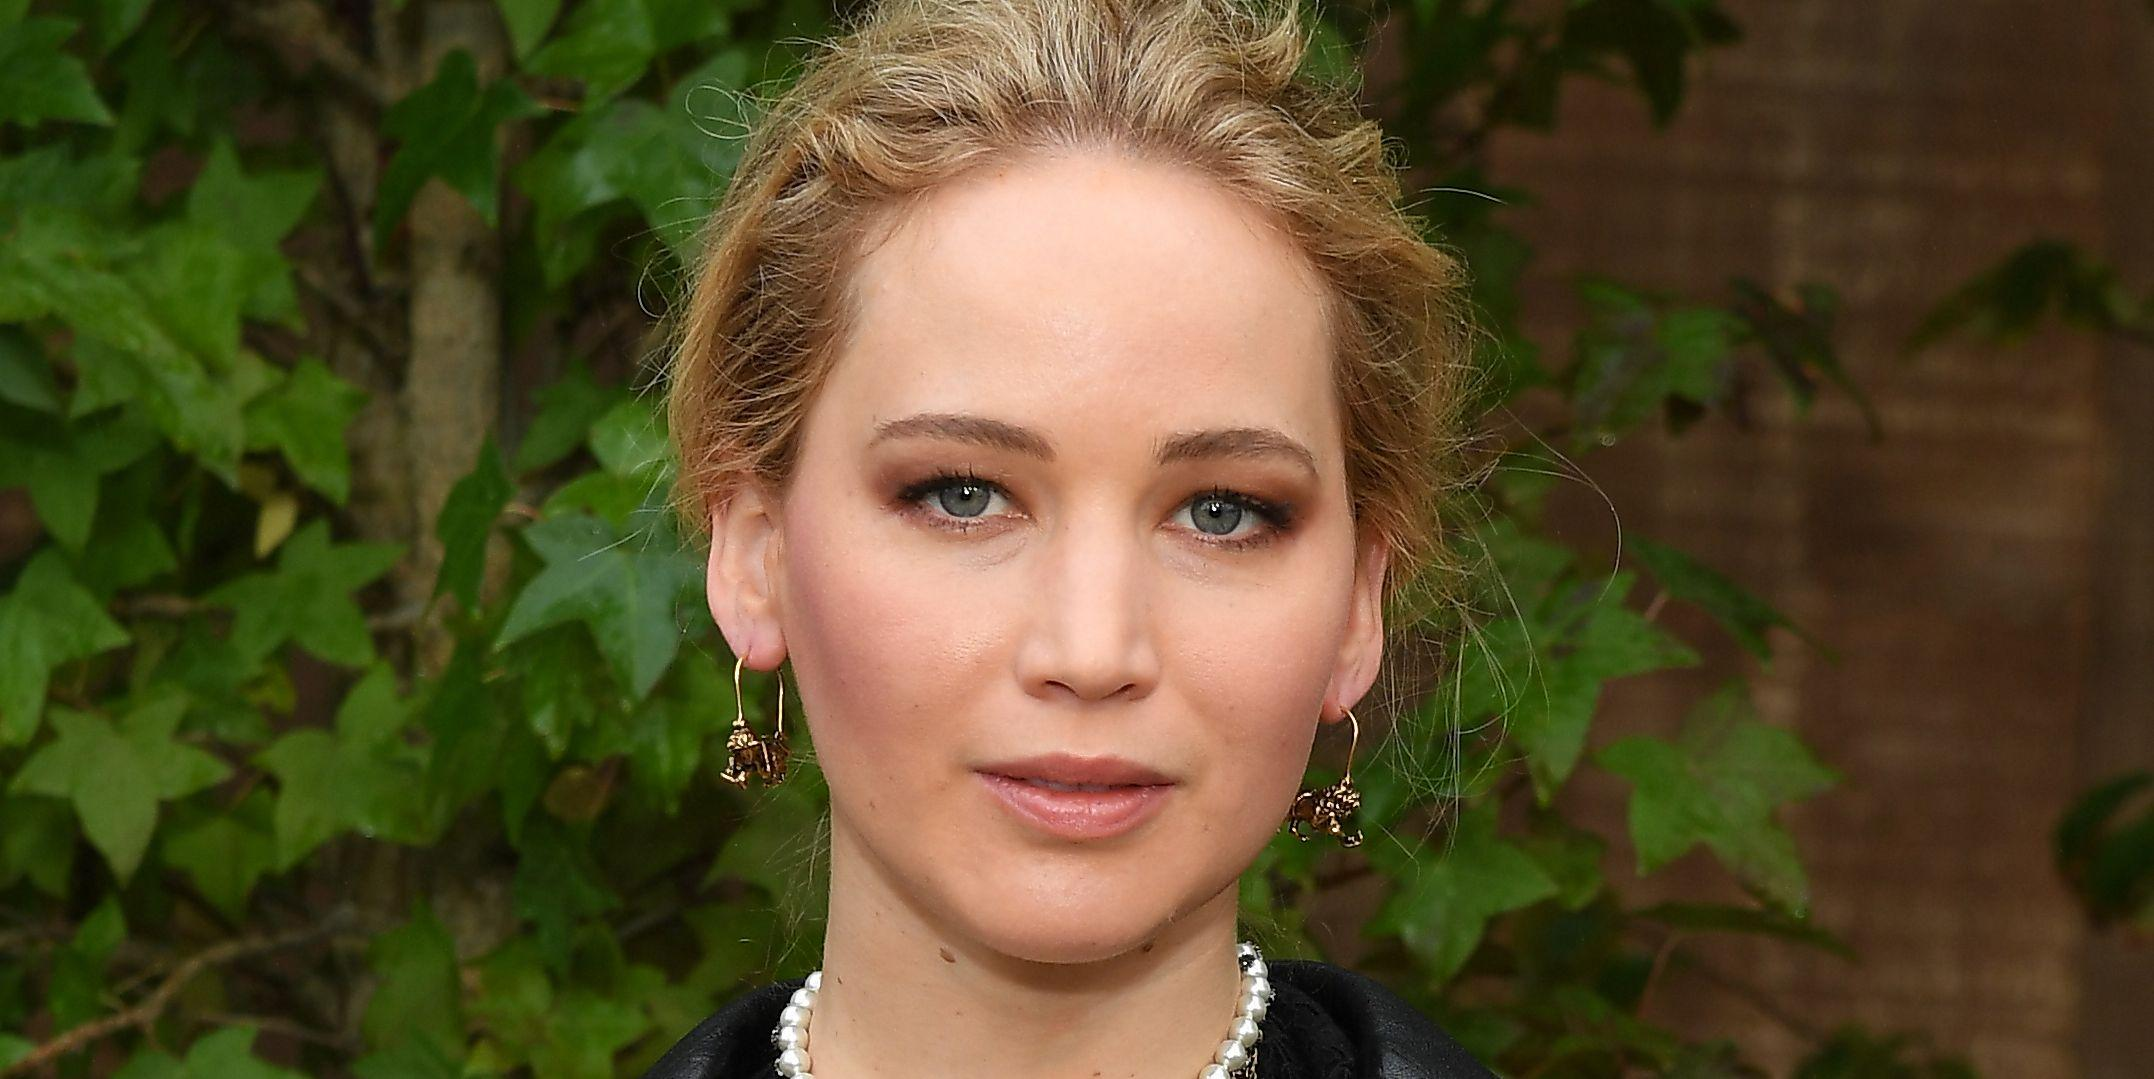 Jennifer Lawrence Goes Public On Twitter For The First ...